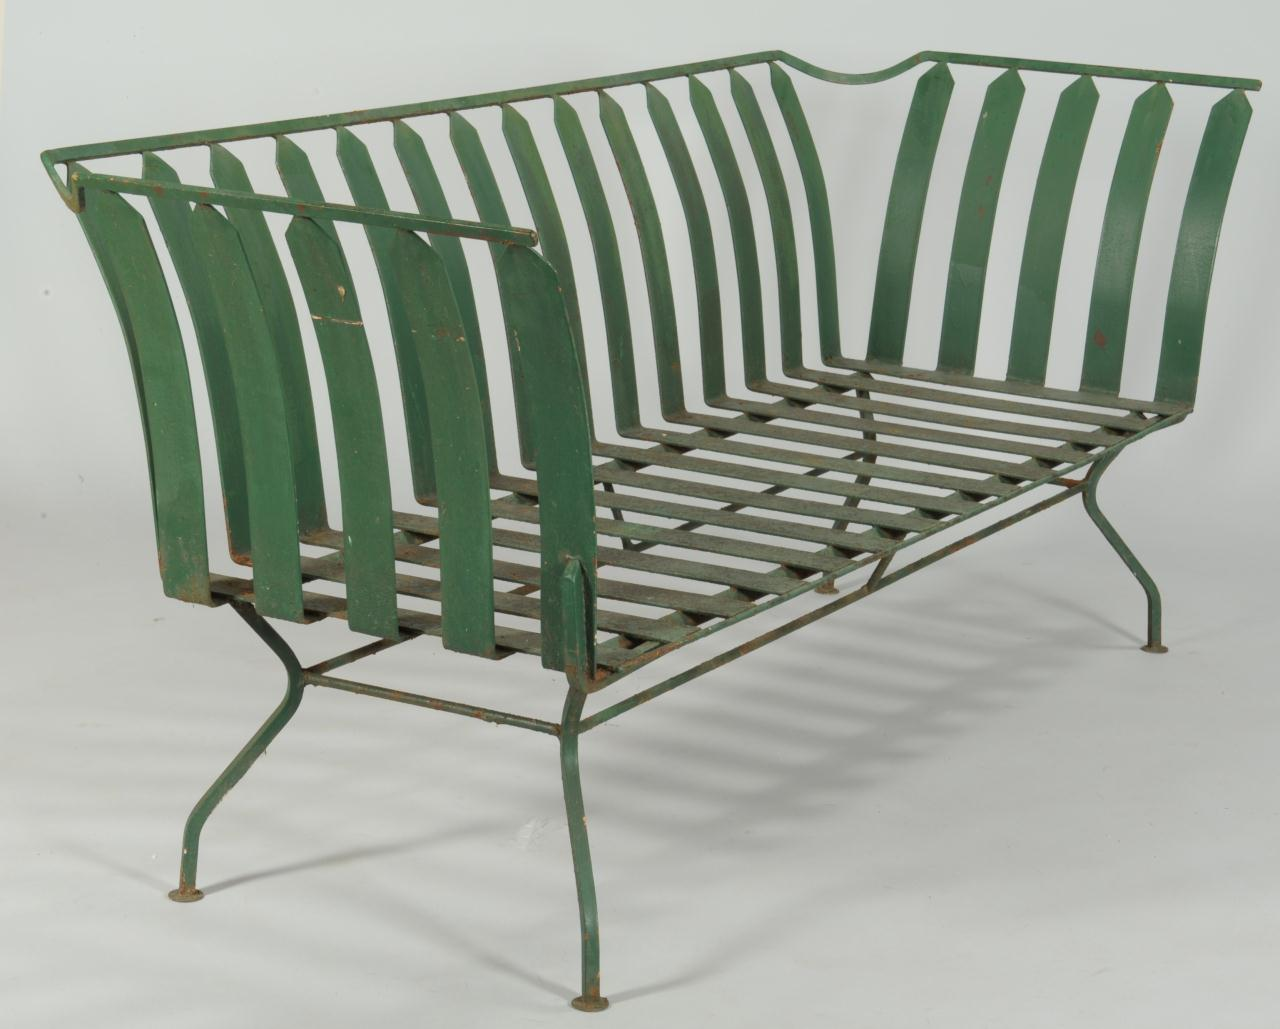 Lot 589 French Art Deco Patio Furniture Settee 3 Chairs